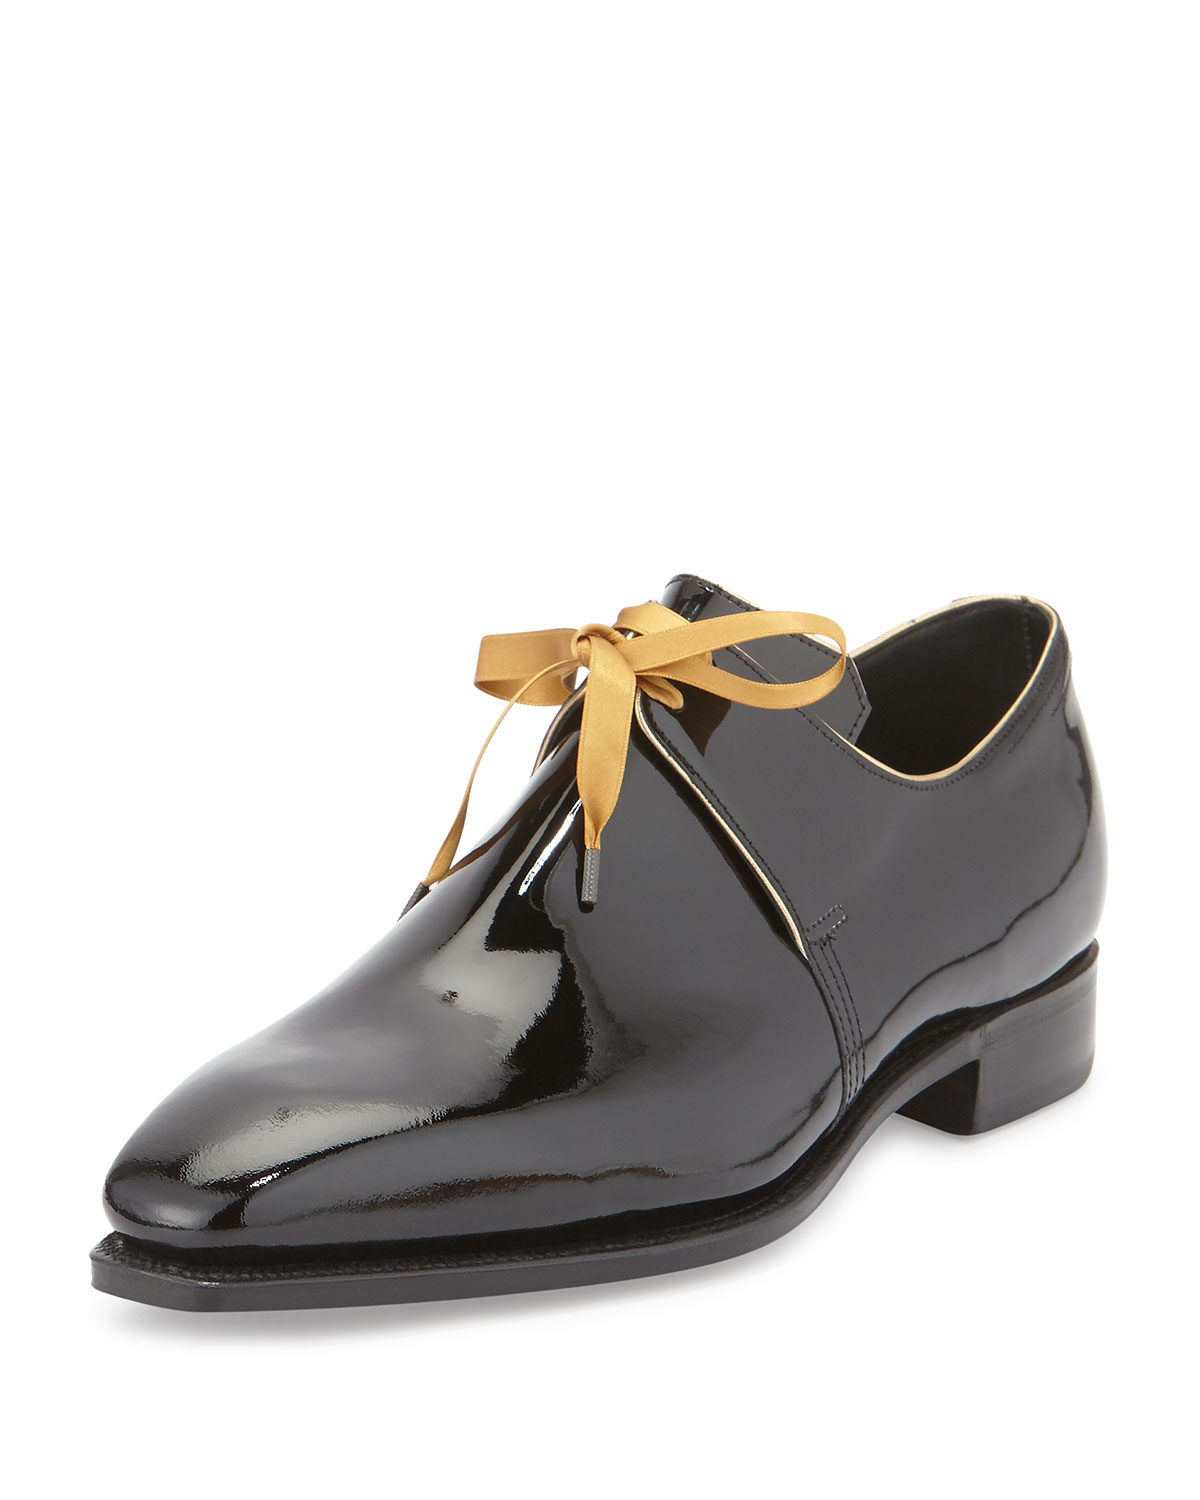 edf47f0b180 Corthay Arca Patent Leather Derby Shoe with Gold Piping